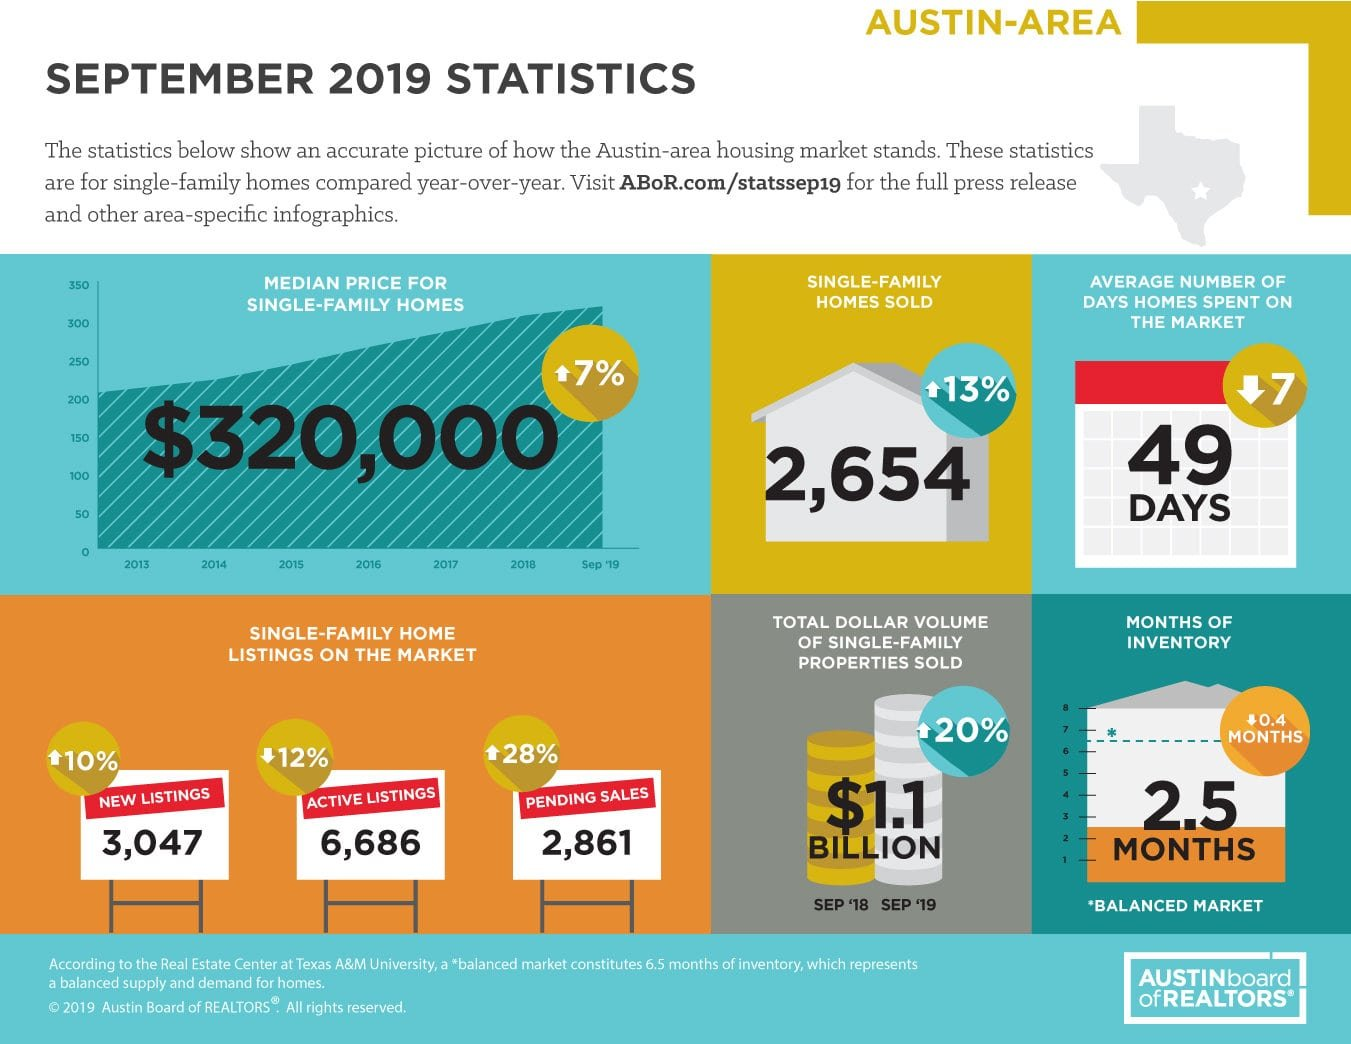 mls austin real estate market stats for September 2019, JBGoodwin realtors